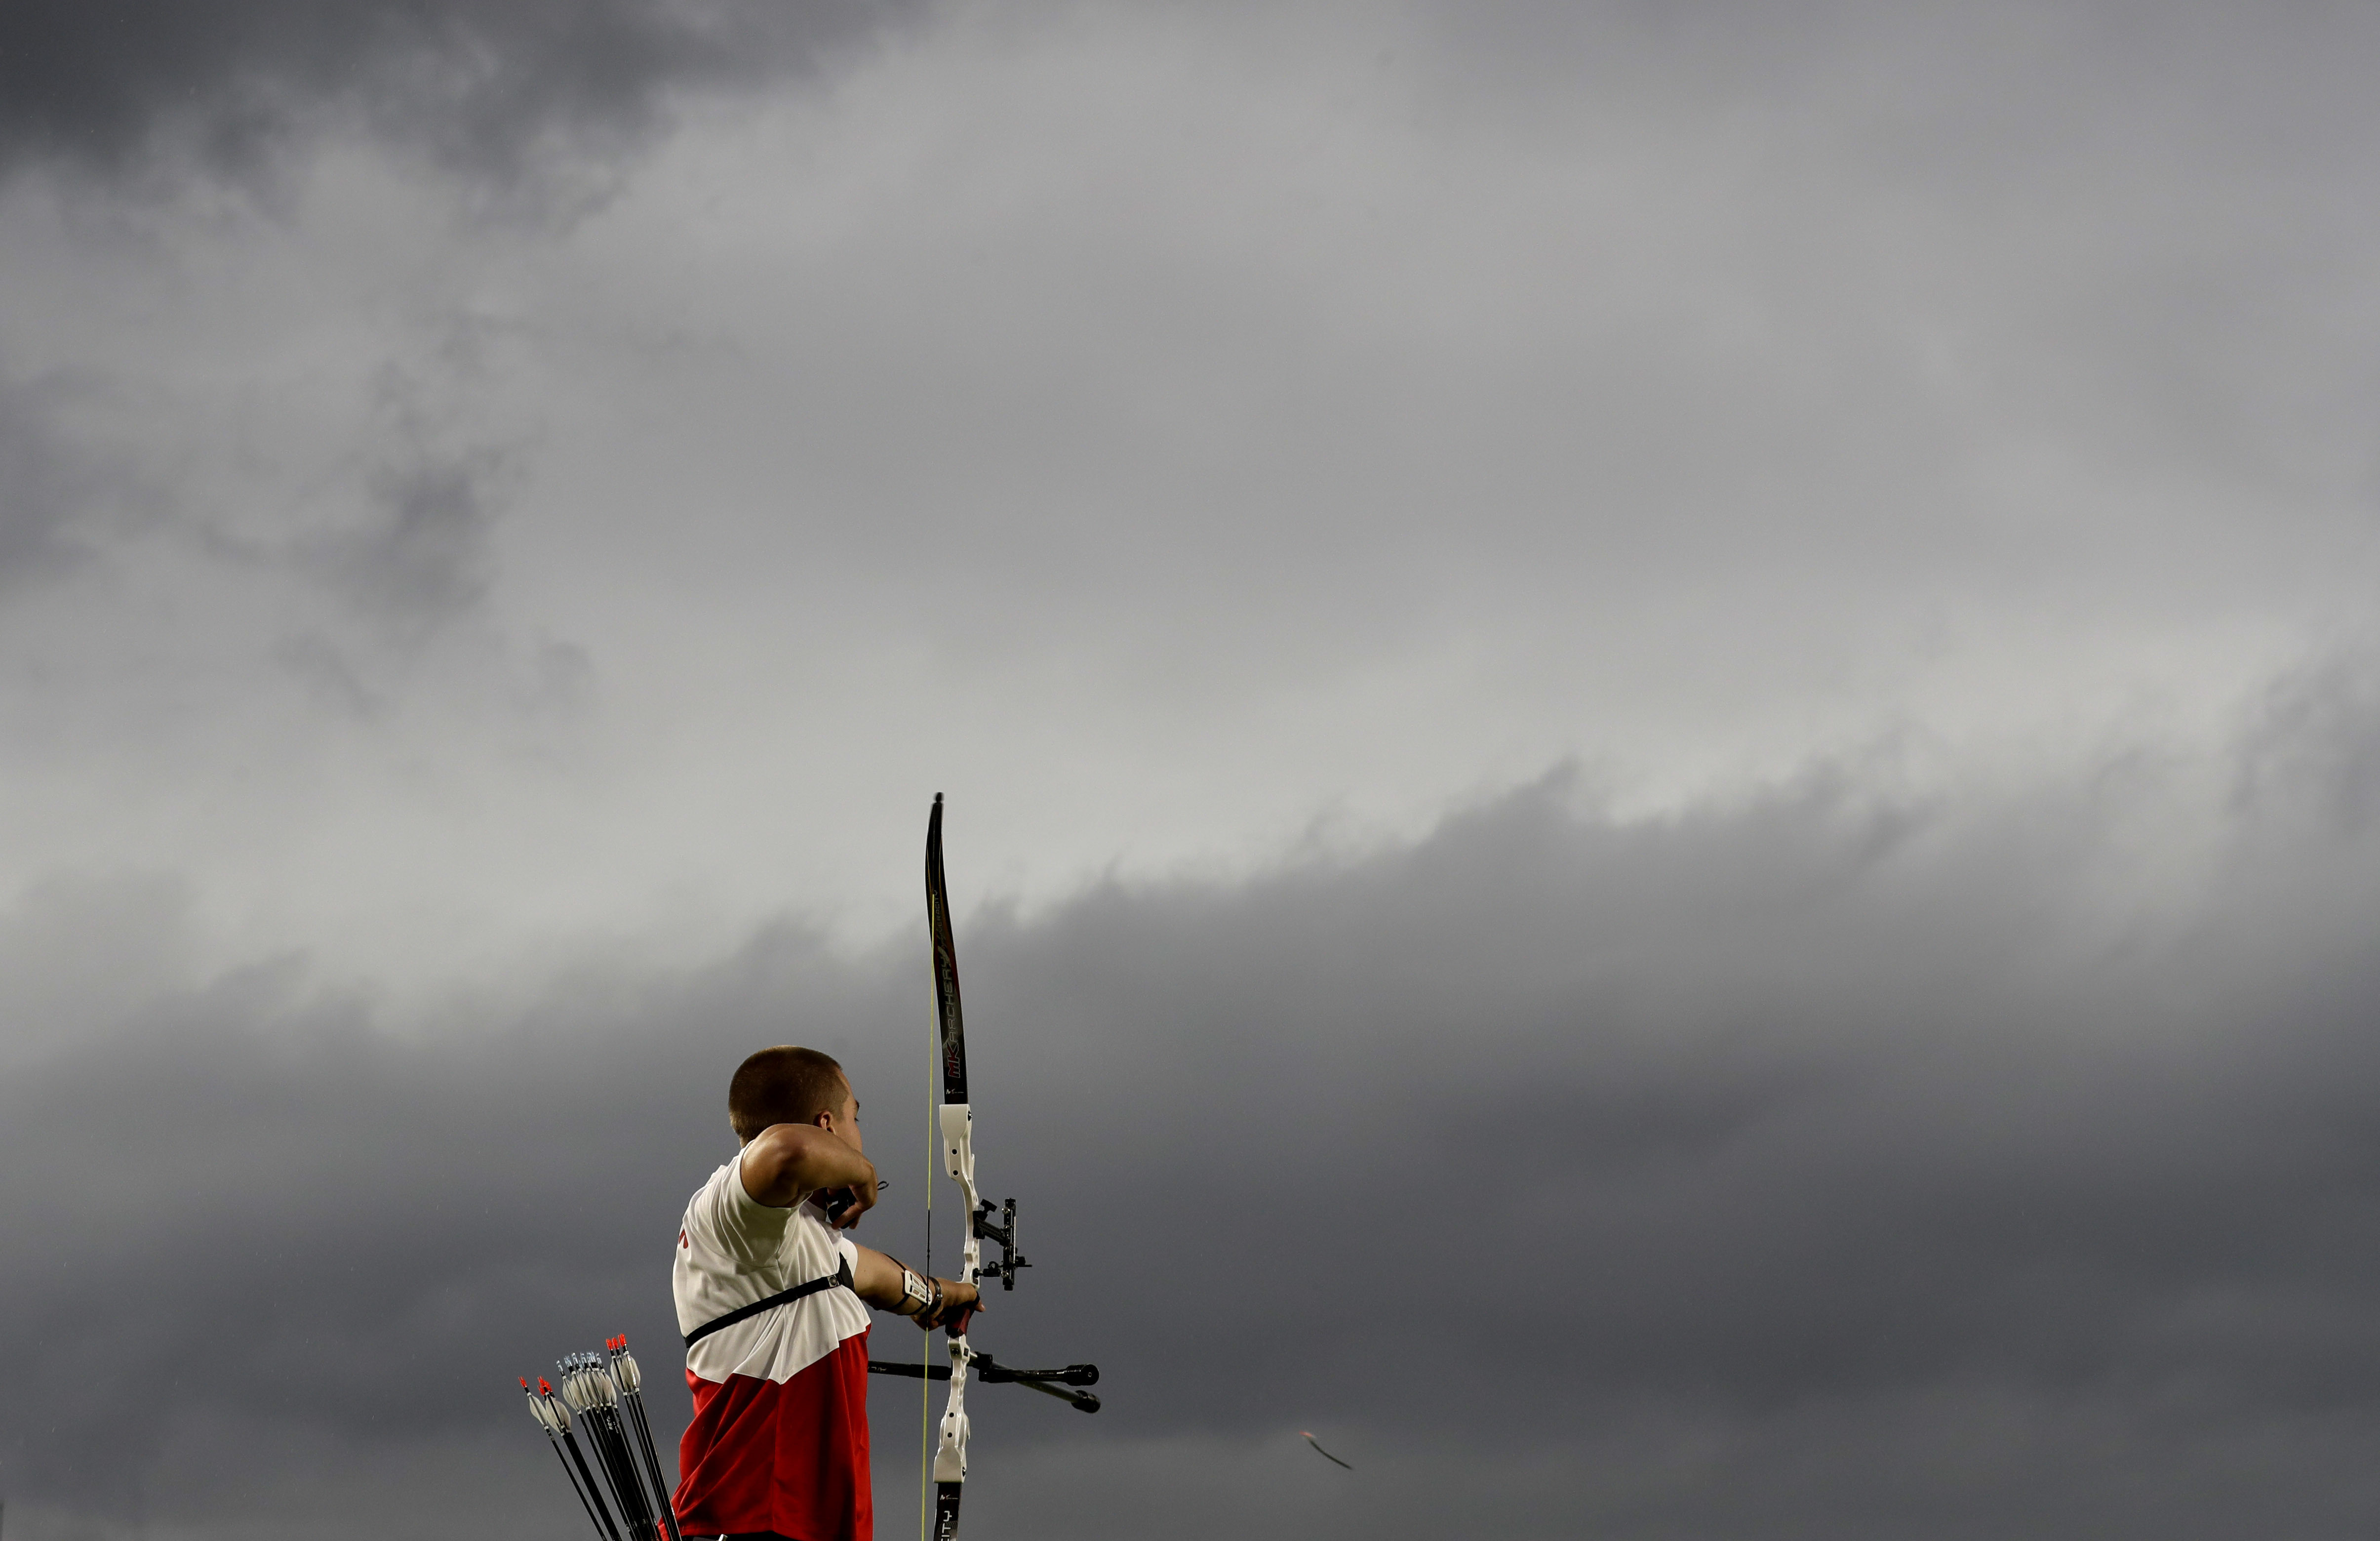 Belgium's Robin Ramaekers releases his arrow during an elimination round of the individual archery competition at the Sambadrome venue during the 2016 Summer Olympics in Rio de Janeiro, Brazil, Wednesday, Aug. 10, 2016. (AP Photo/Alessandra Tarantino)